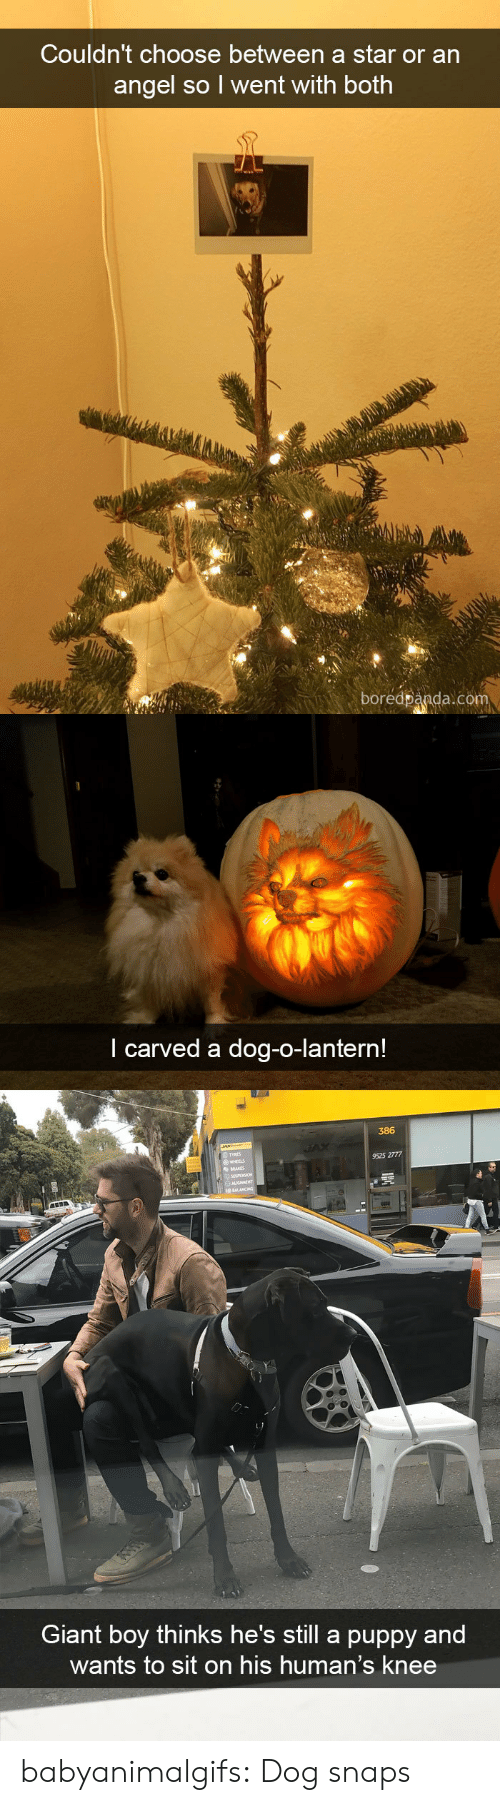 Target, Tumblr, and Angel: Couldn't choose between a star or an  angel so l went with both  boredpanda.com   I carved a dog-o-lantern!   386  TYRES  9525 2777  HEELS  Giant boy thinks he's still a puppy and  wants to sit on his human's knee babyanimalgifs:  Dog snaps